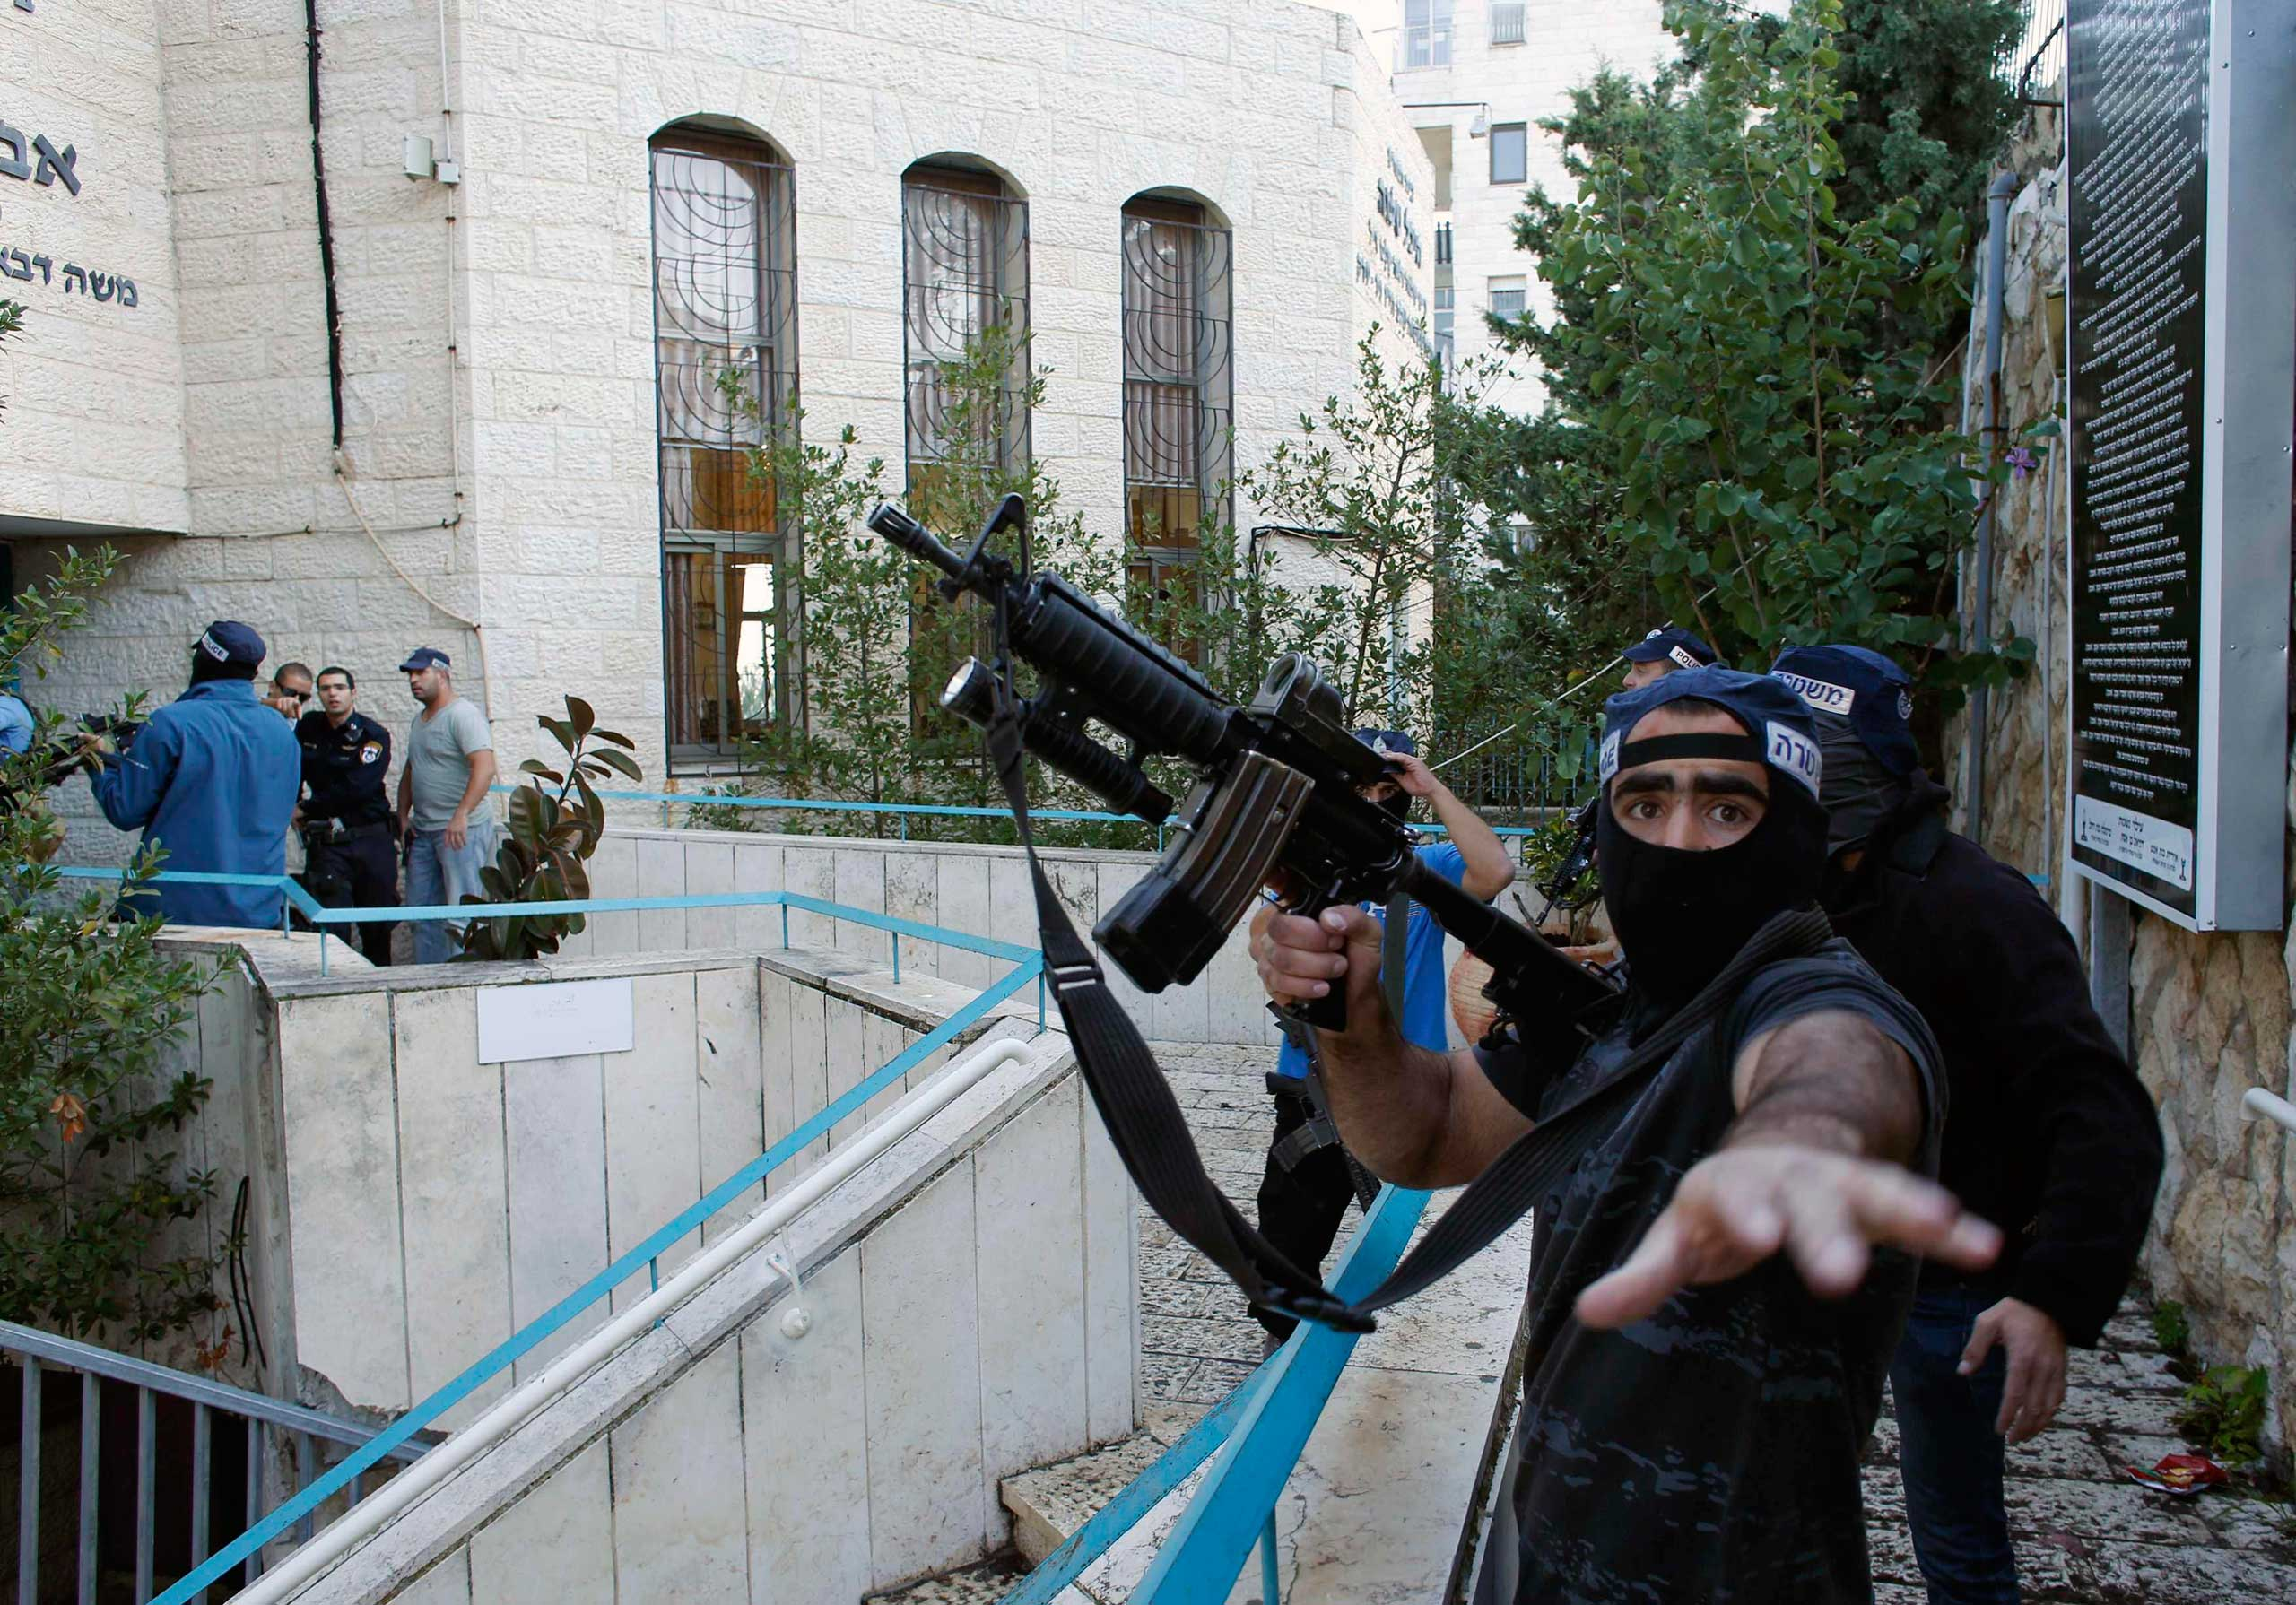 An Israeli police officer gestures as he holds a weapon near the scene of an attack at a Jerusalem synagogue on Nov. 18, 2014.